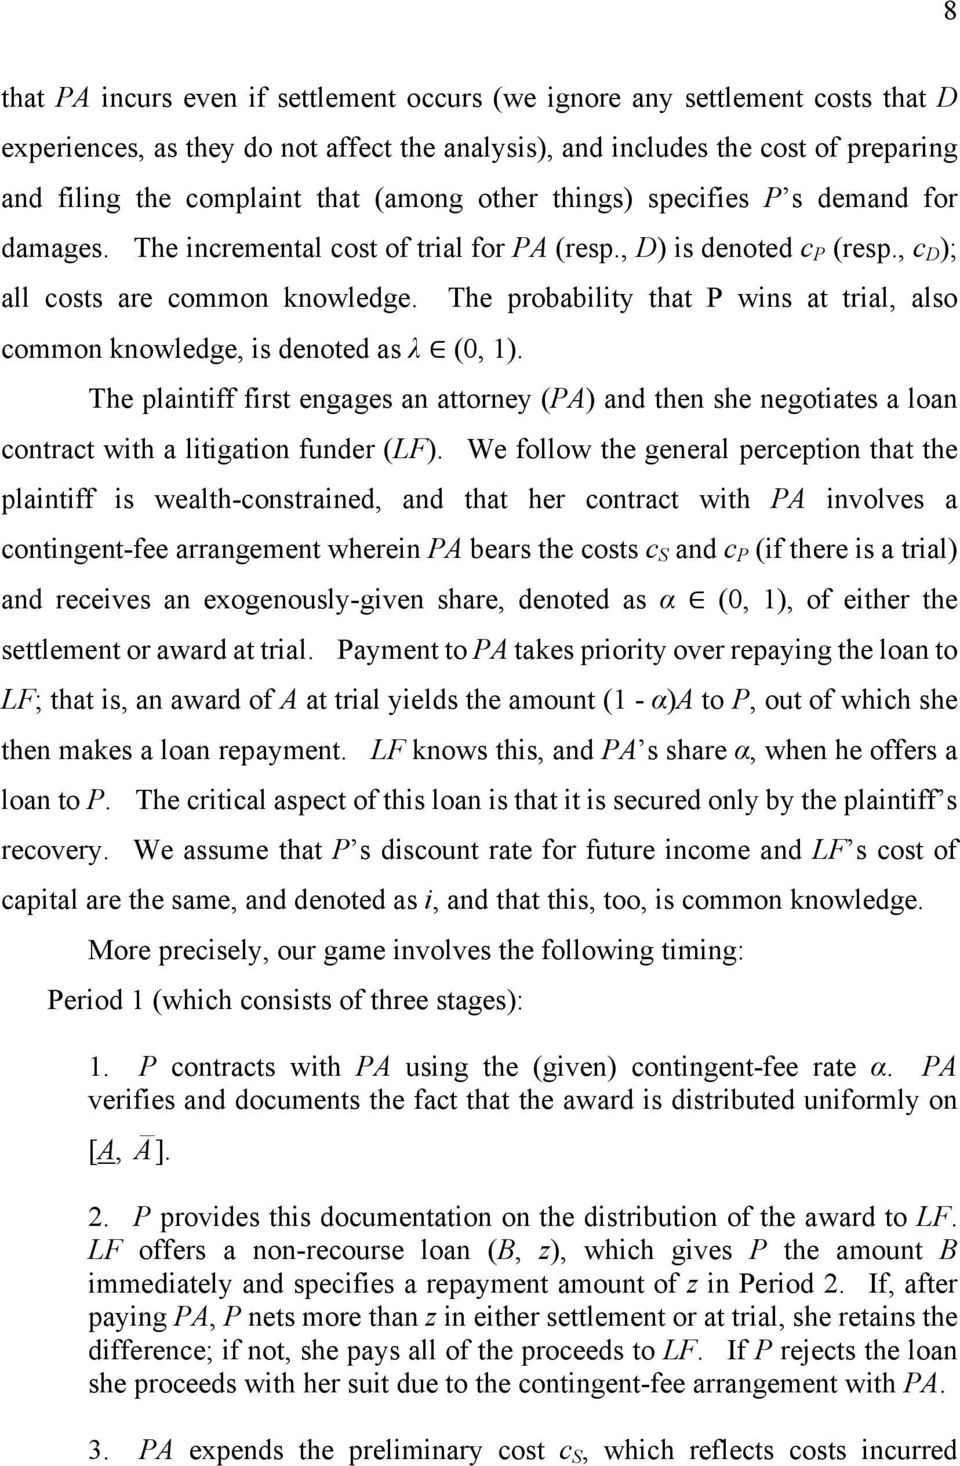 The probability that P wins at trial, also common knowledge, is denoted as λ (0, 1). The plaintiff first engages an attorney (PA) and then she negotiates a loan contract with a litigation funder (LF).